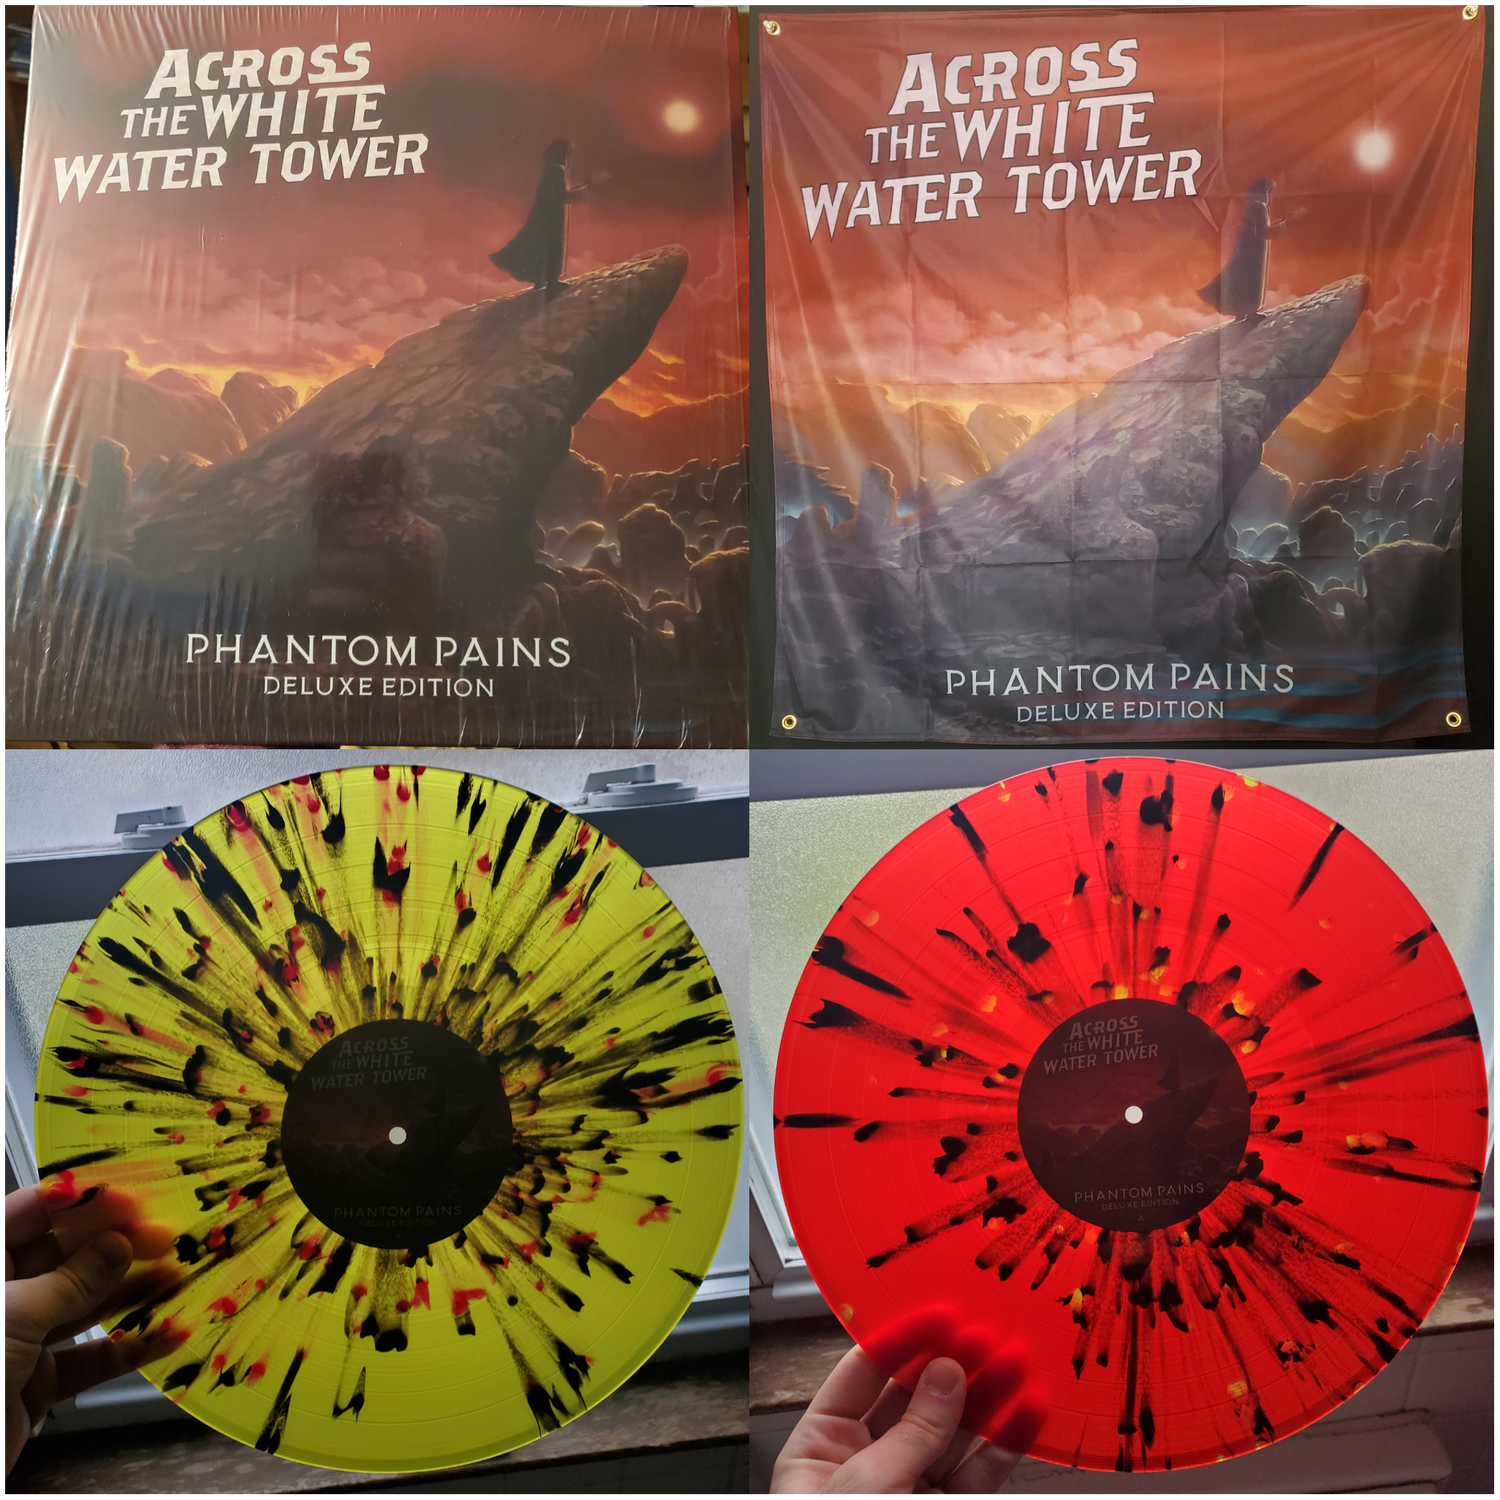 PHANTOM PAINS DELUXE VINYL